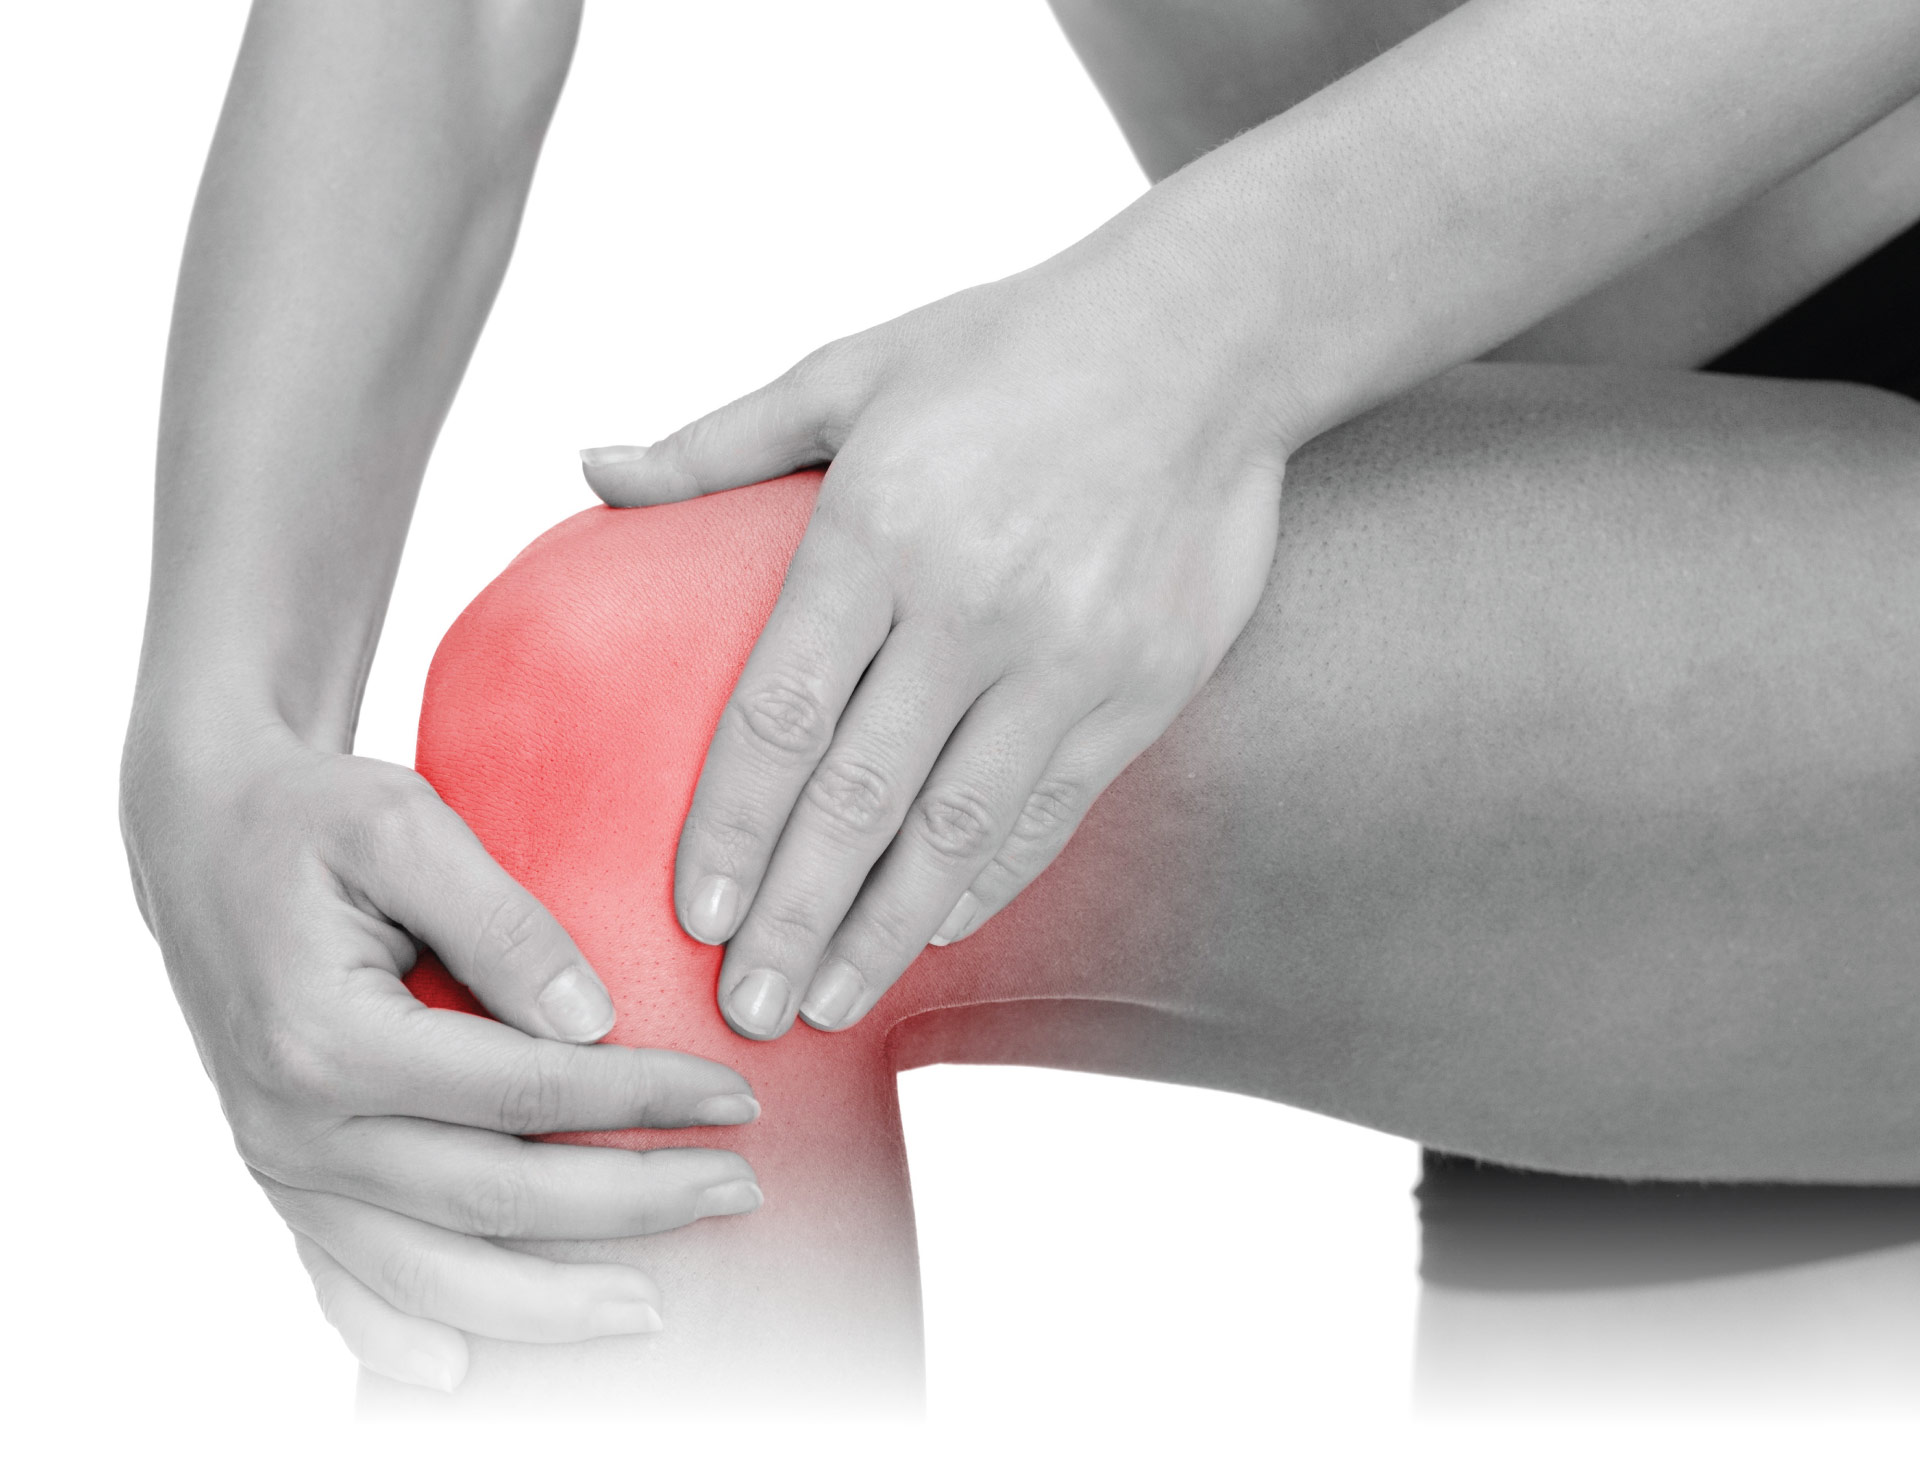 knee-pain-image